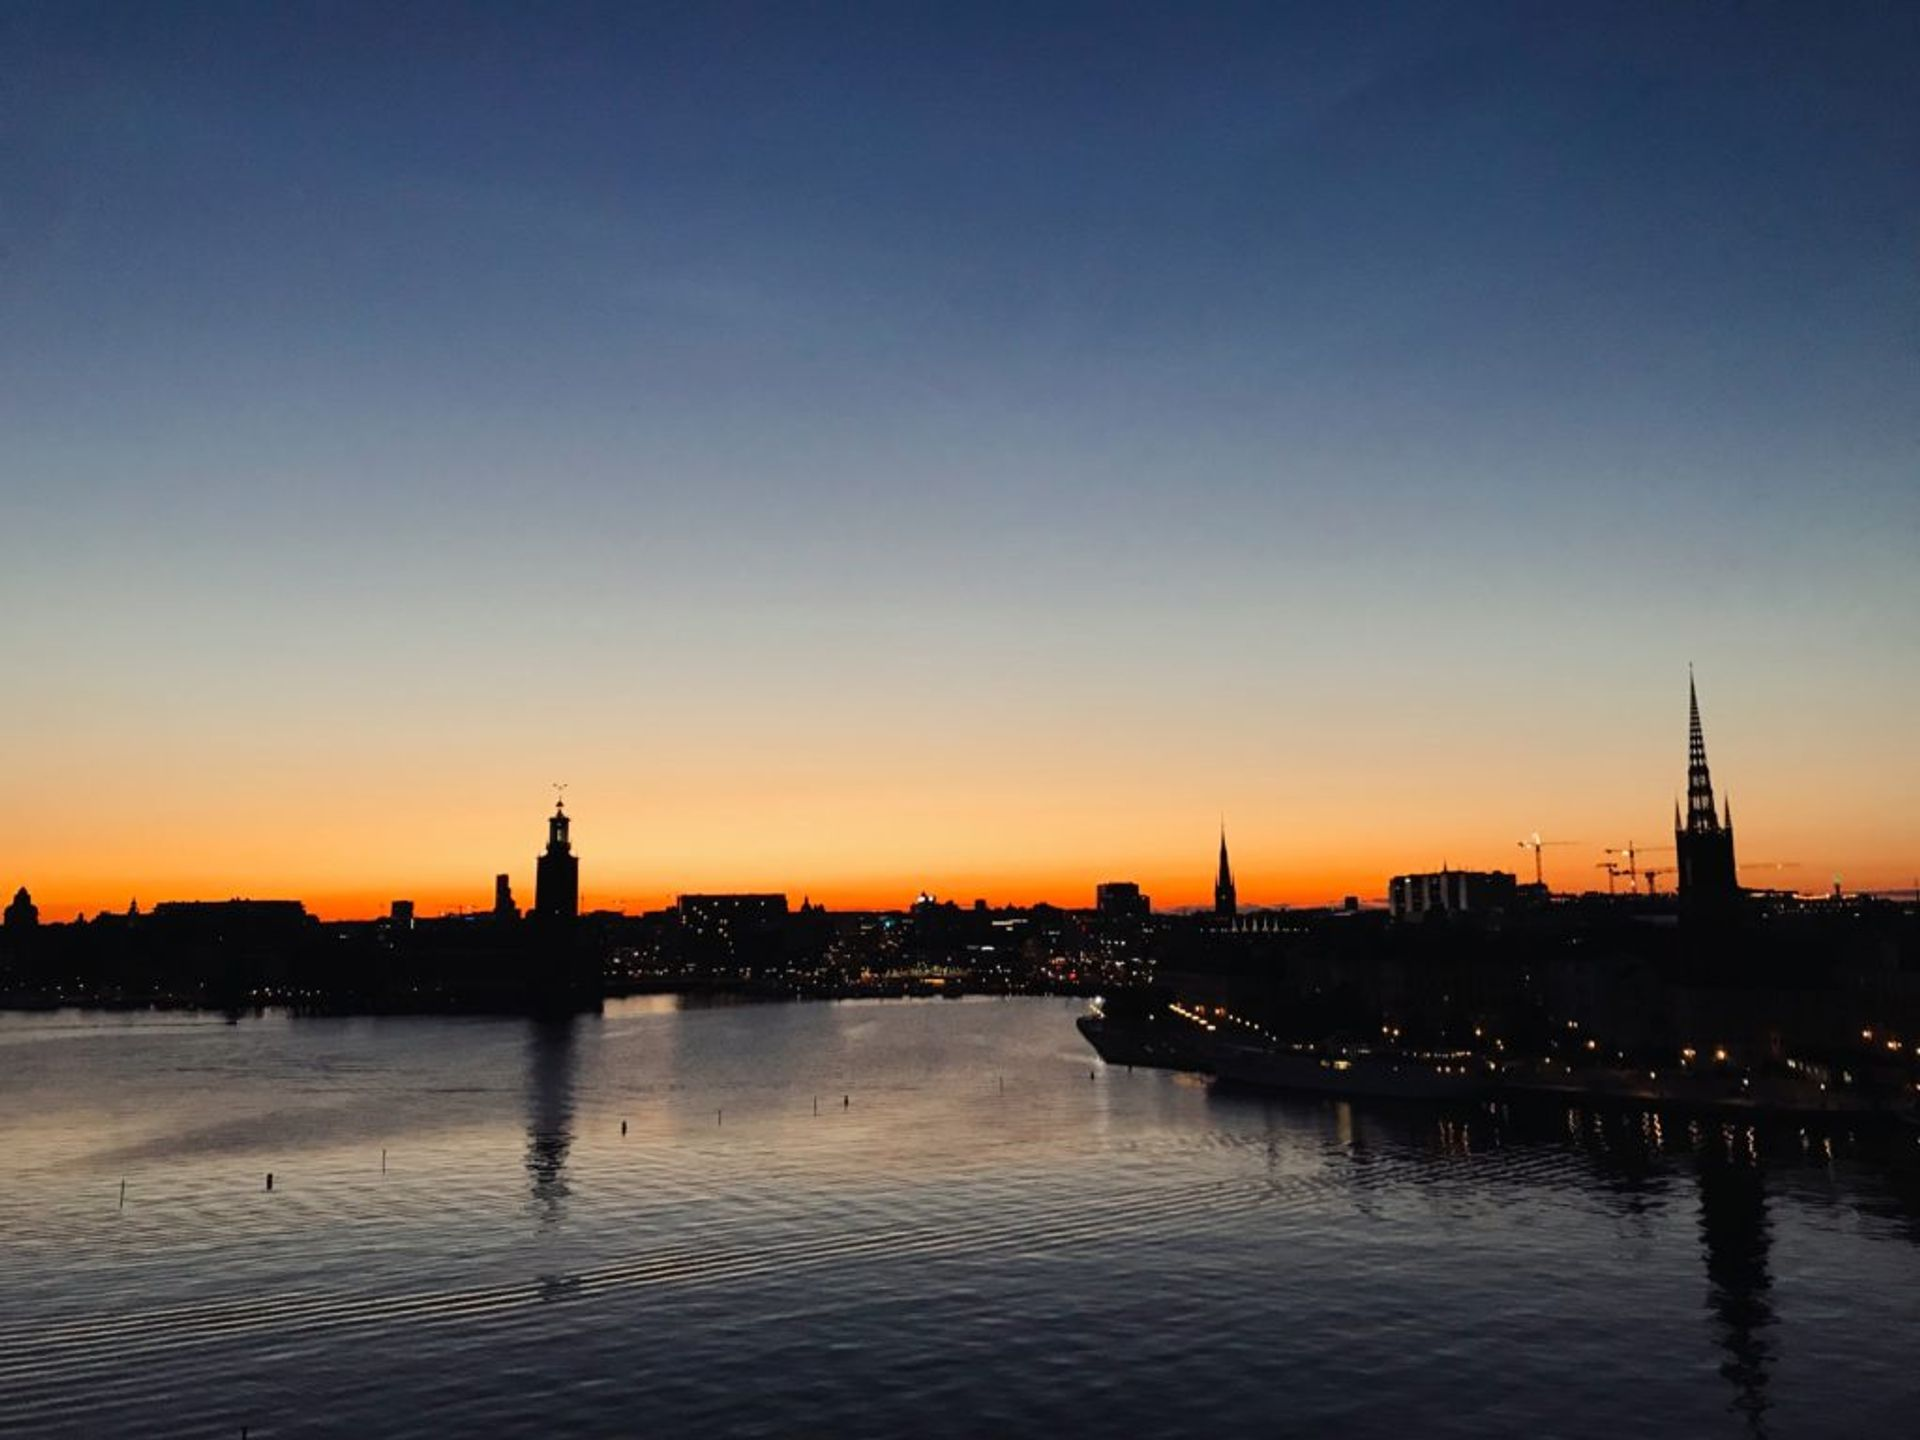 The Stockholm skyline silhouetted against a bright orange sunset.